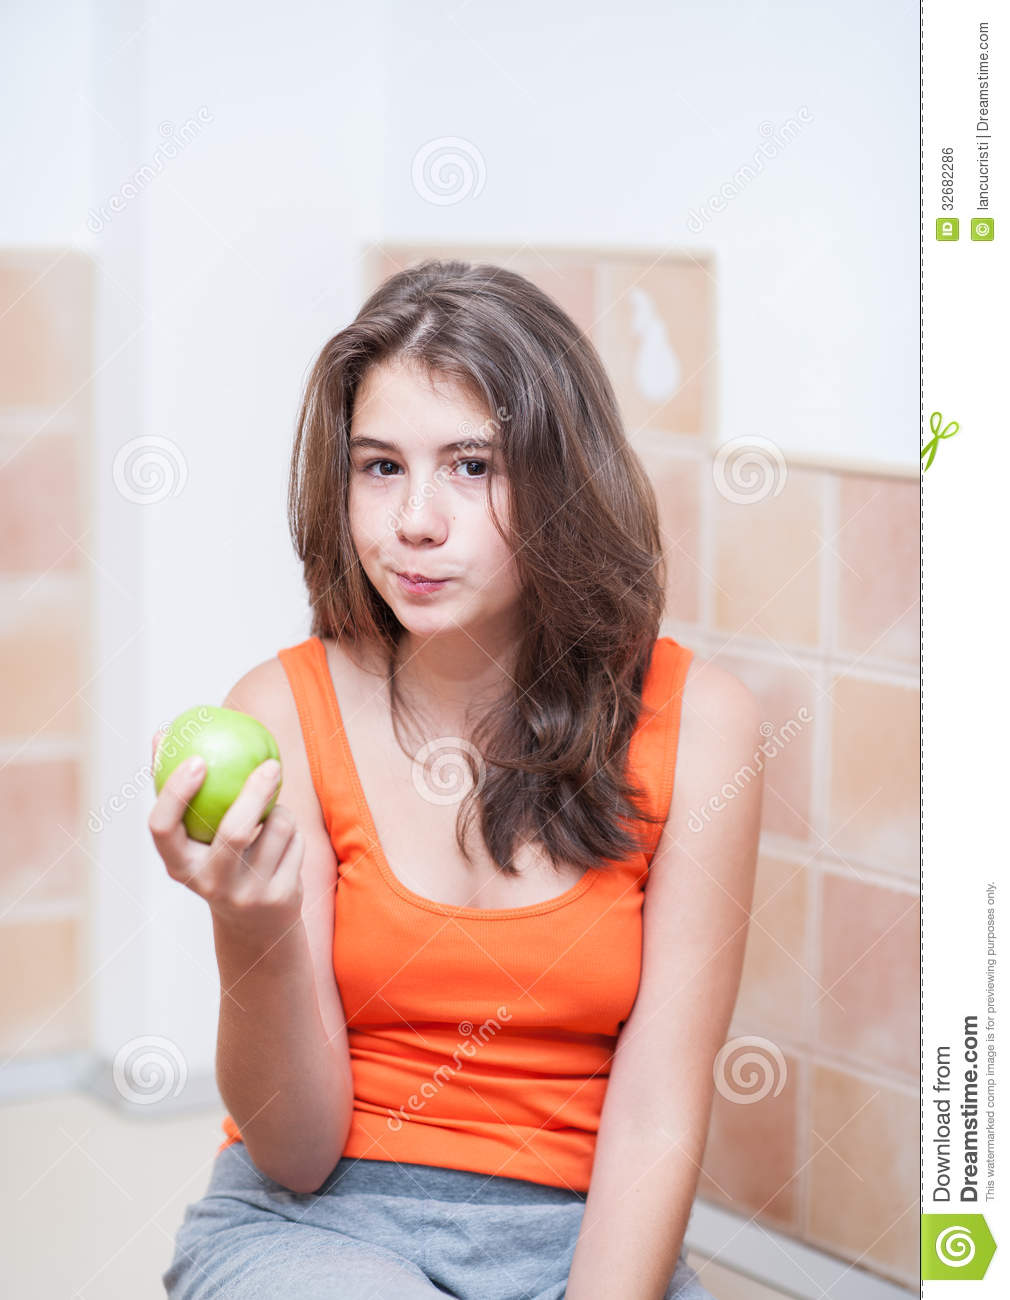 Beautiful and young teenage girl in orange t-shirt eating with joy a green  apple